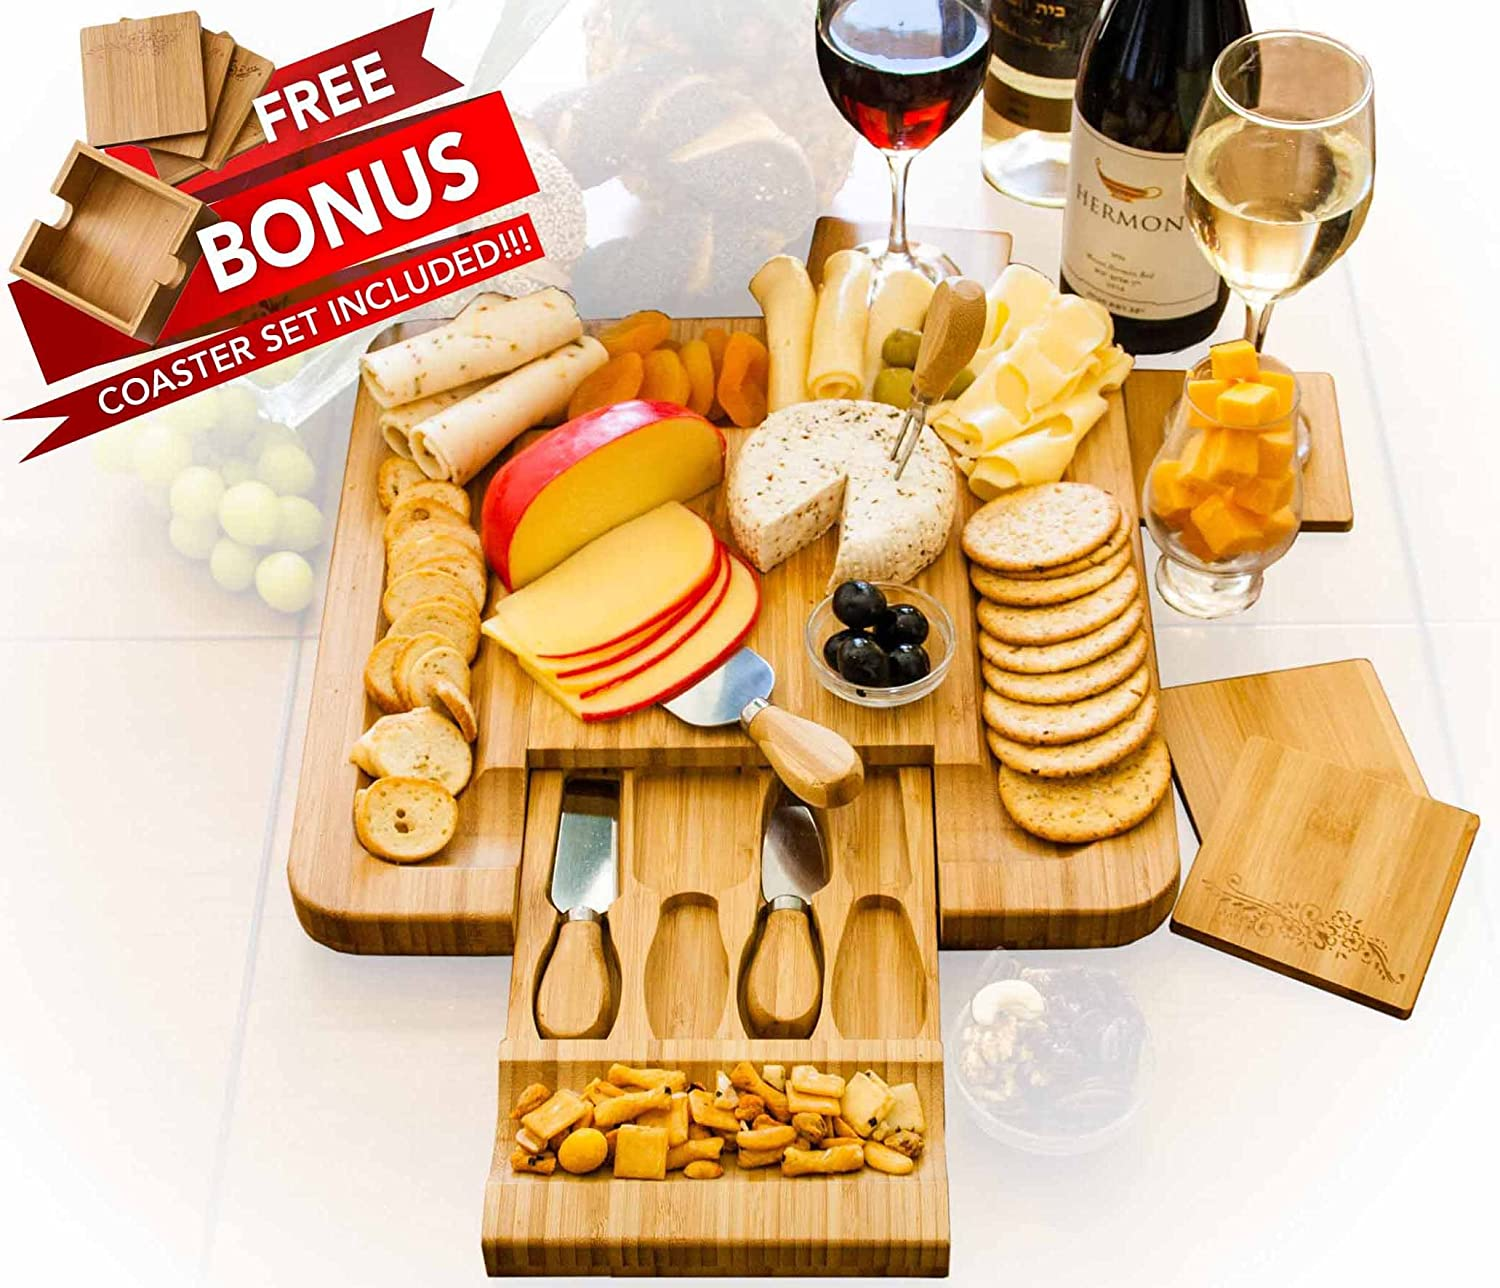 Bamboo Cheese Board Set With 4 x Cheese Knives Cutlery in Slide Drawer PLUS FREE Gift - 4 Piece Wine Coaster Set Beautifully Engraved with Stylish Holder LIMITED SUMMER SALE! Sugarman Creations